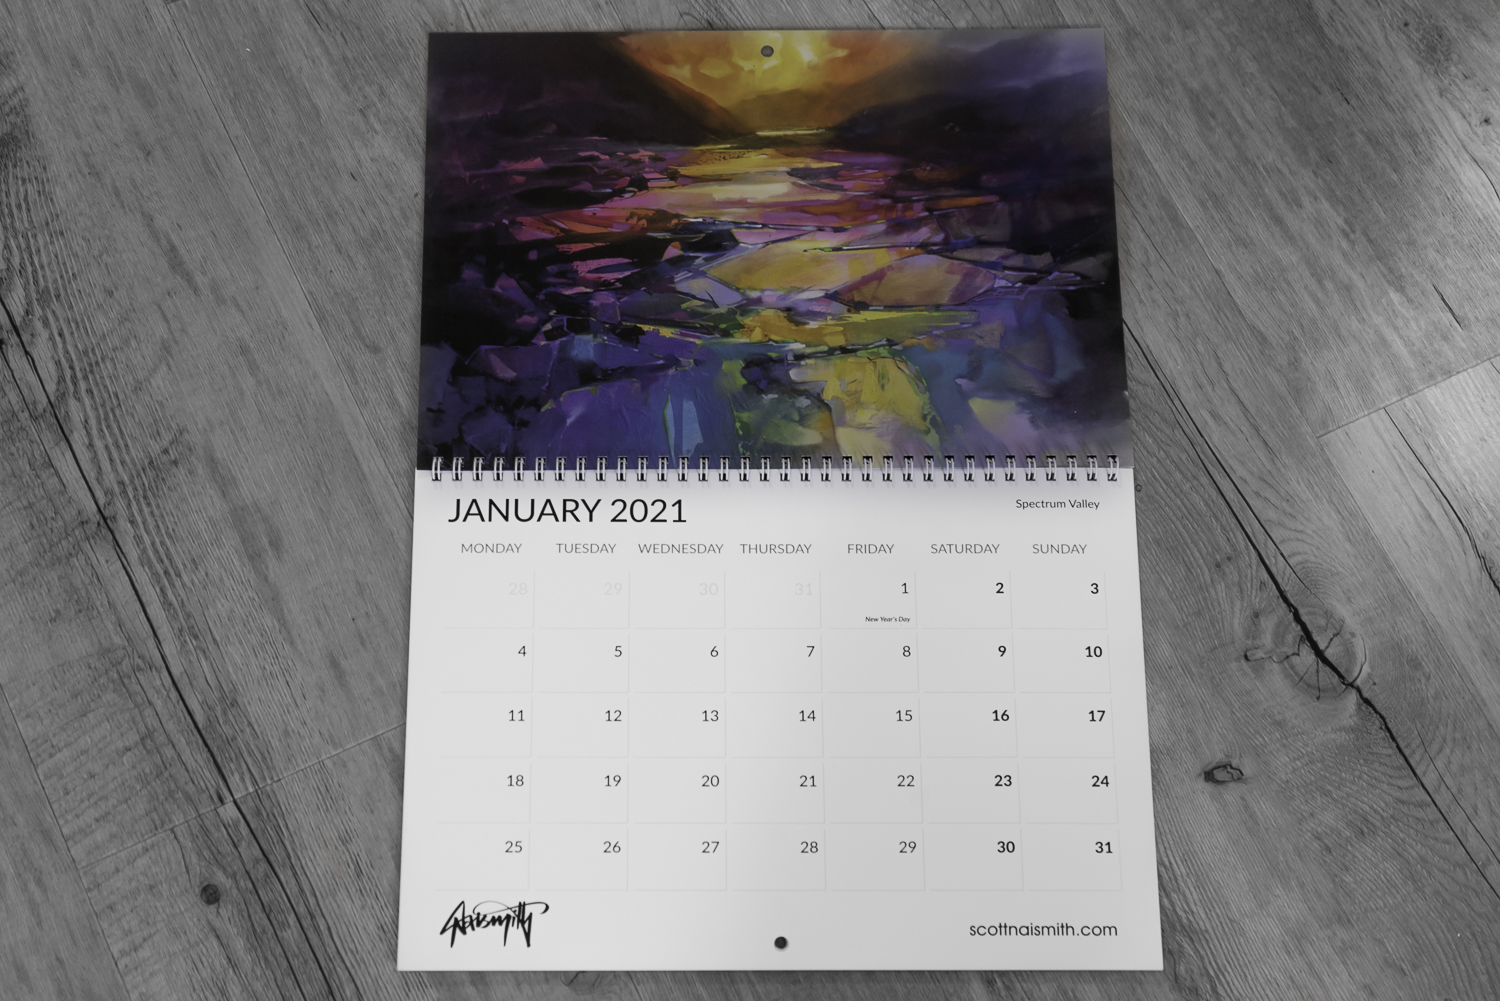 Link to buy Wall Calendar